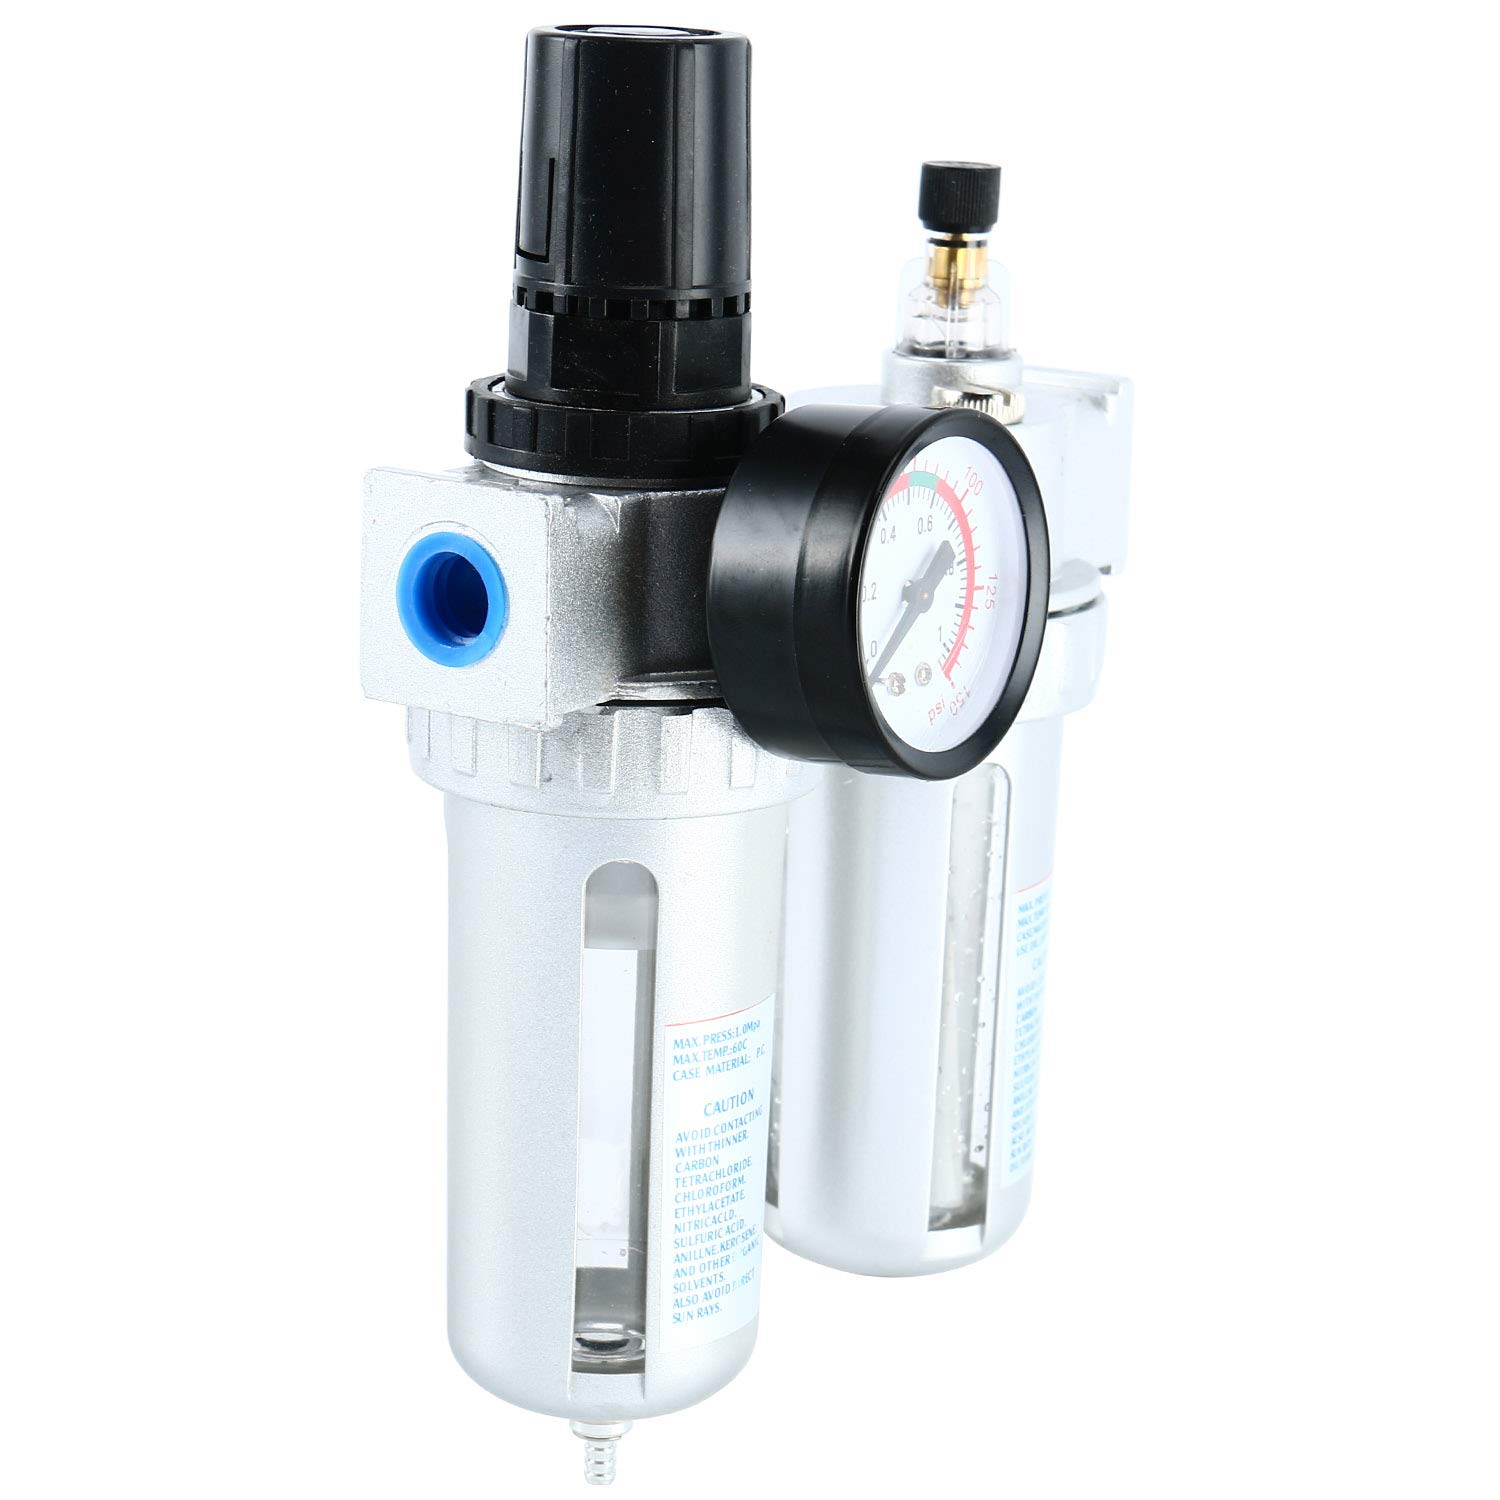 YaeTek 3 in 1 Twin Air Filter Pressure Regulator Gauge Kit 3//8 Water//Oil Trap Separator